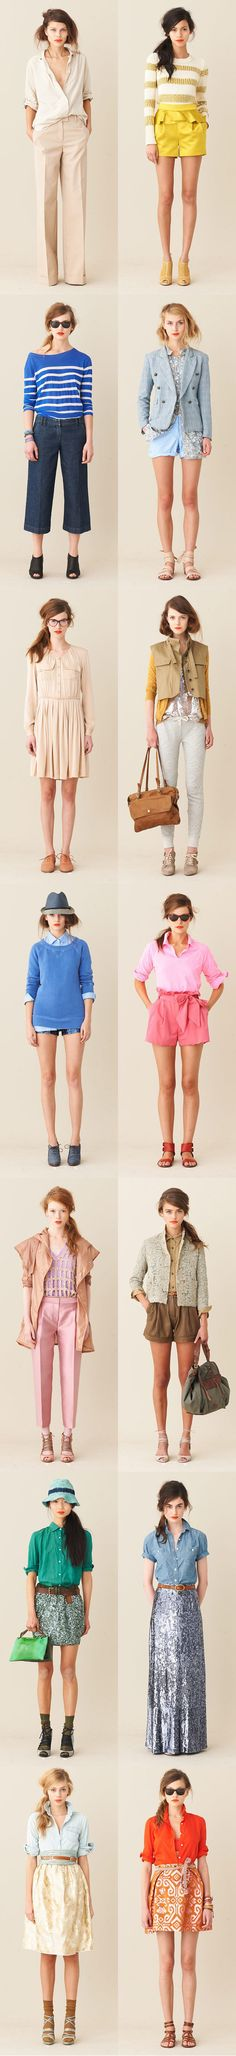 If I could just own everything J.Crew now, that'd be great.